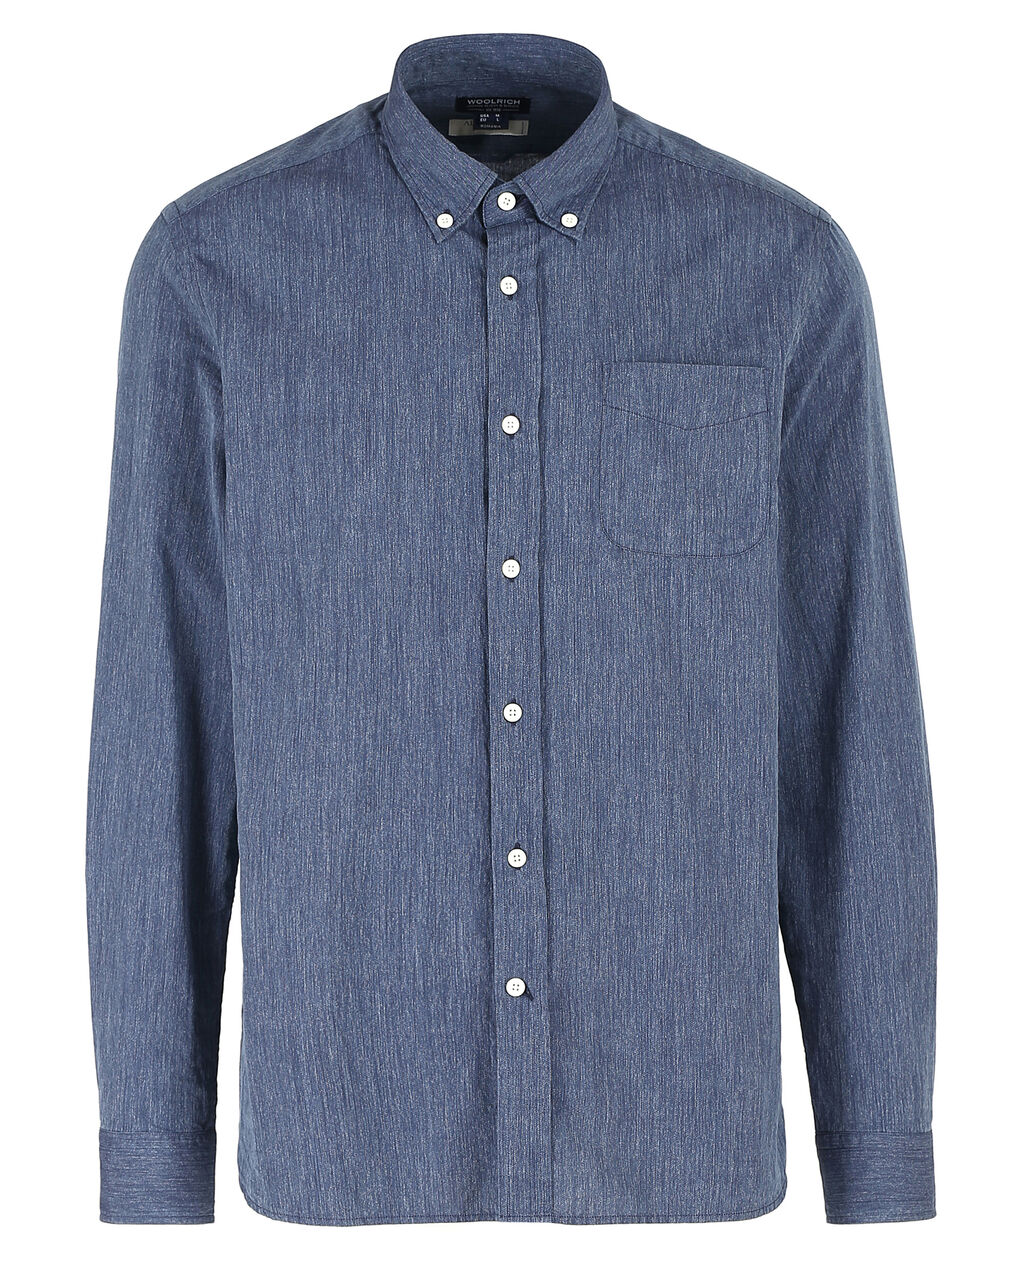 Button Down Denim Shirt, INDIGO, hi-res